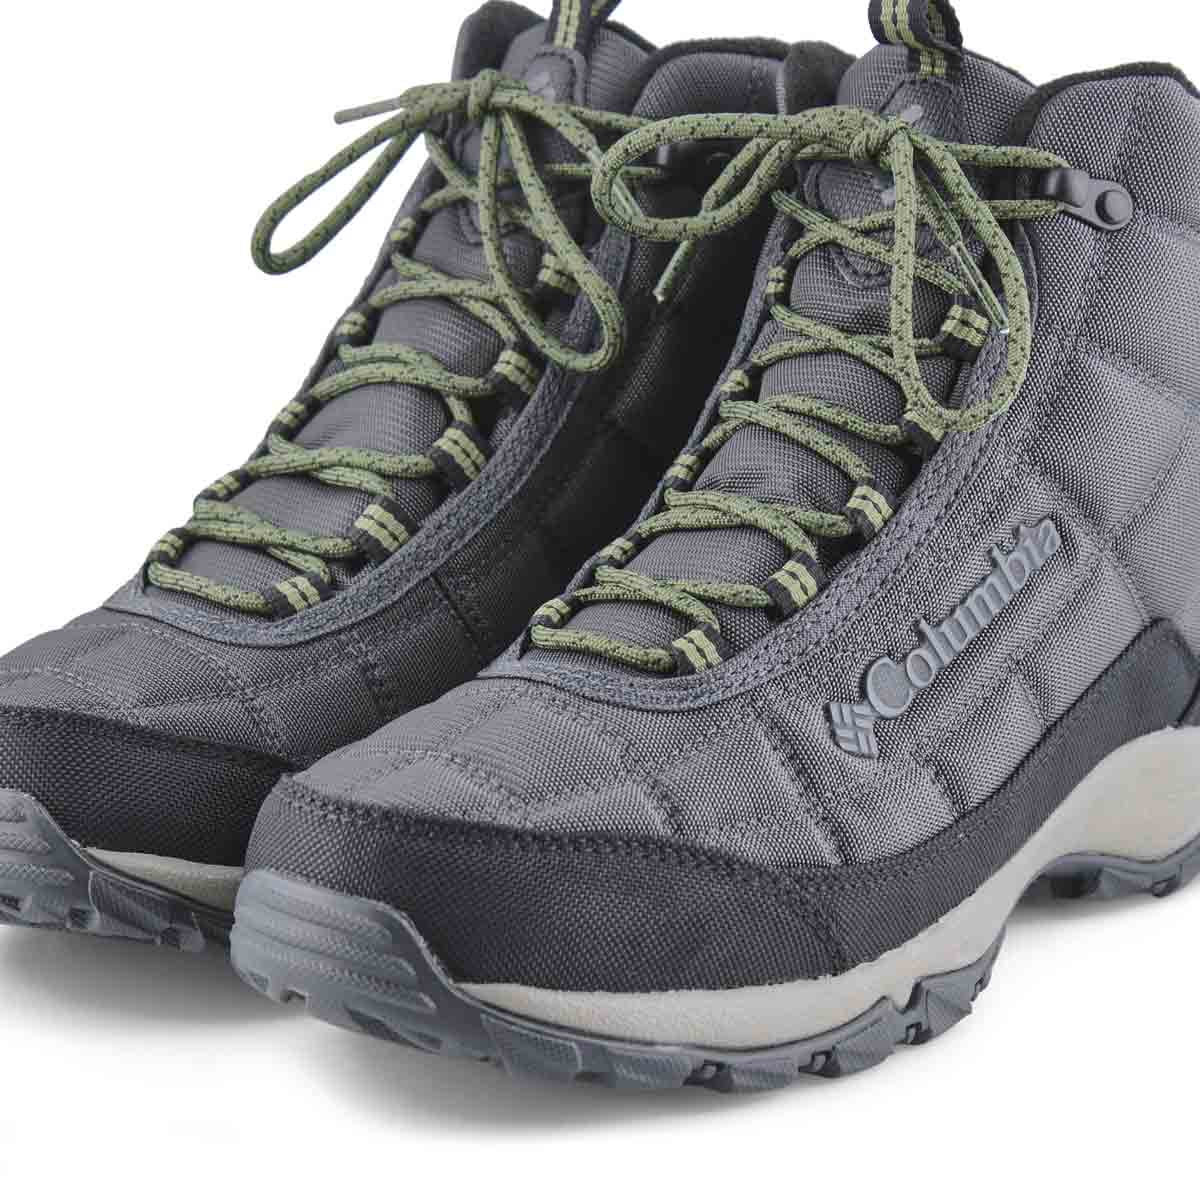 Men's Firecamp OmniTech Waterproof Boot - Gry/Grn